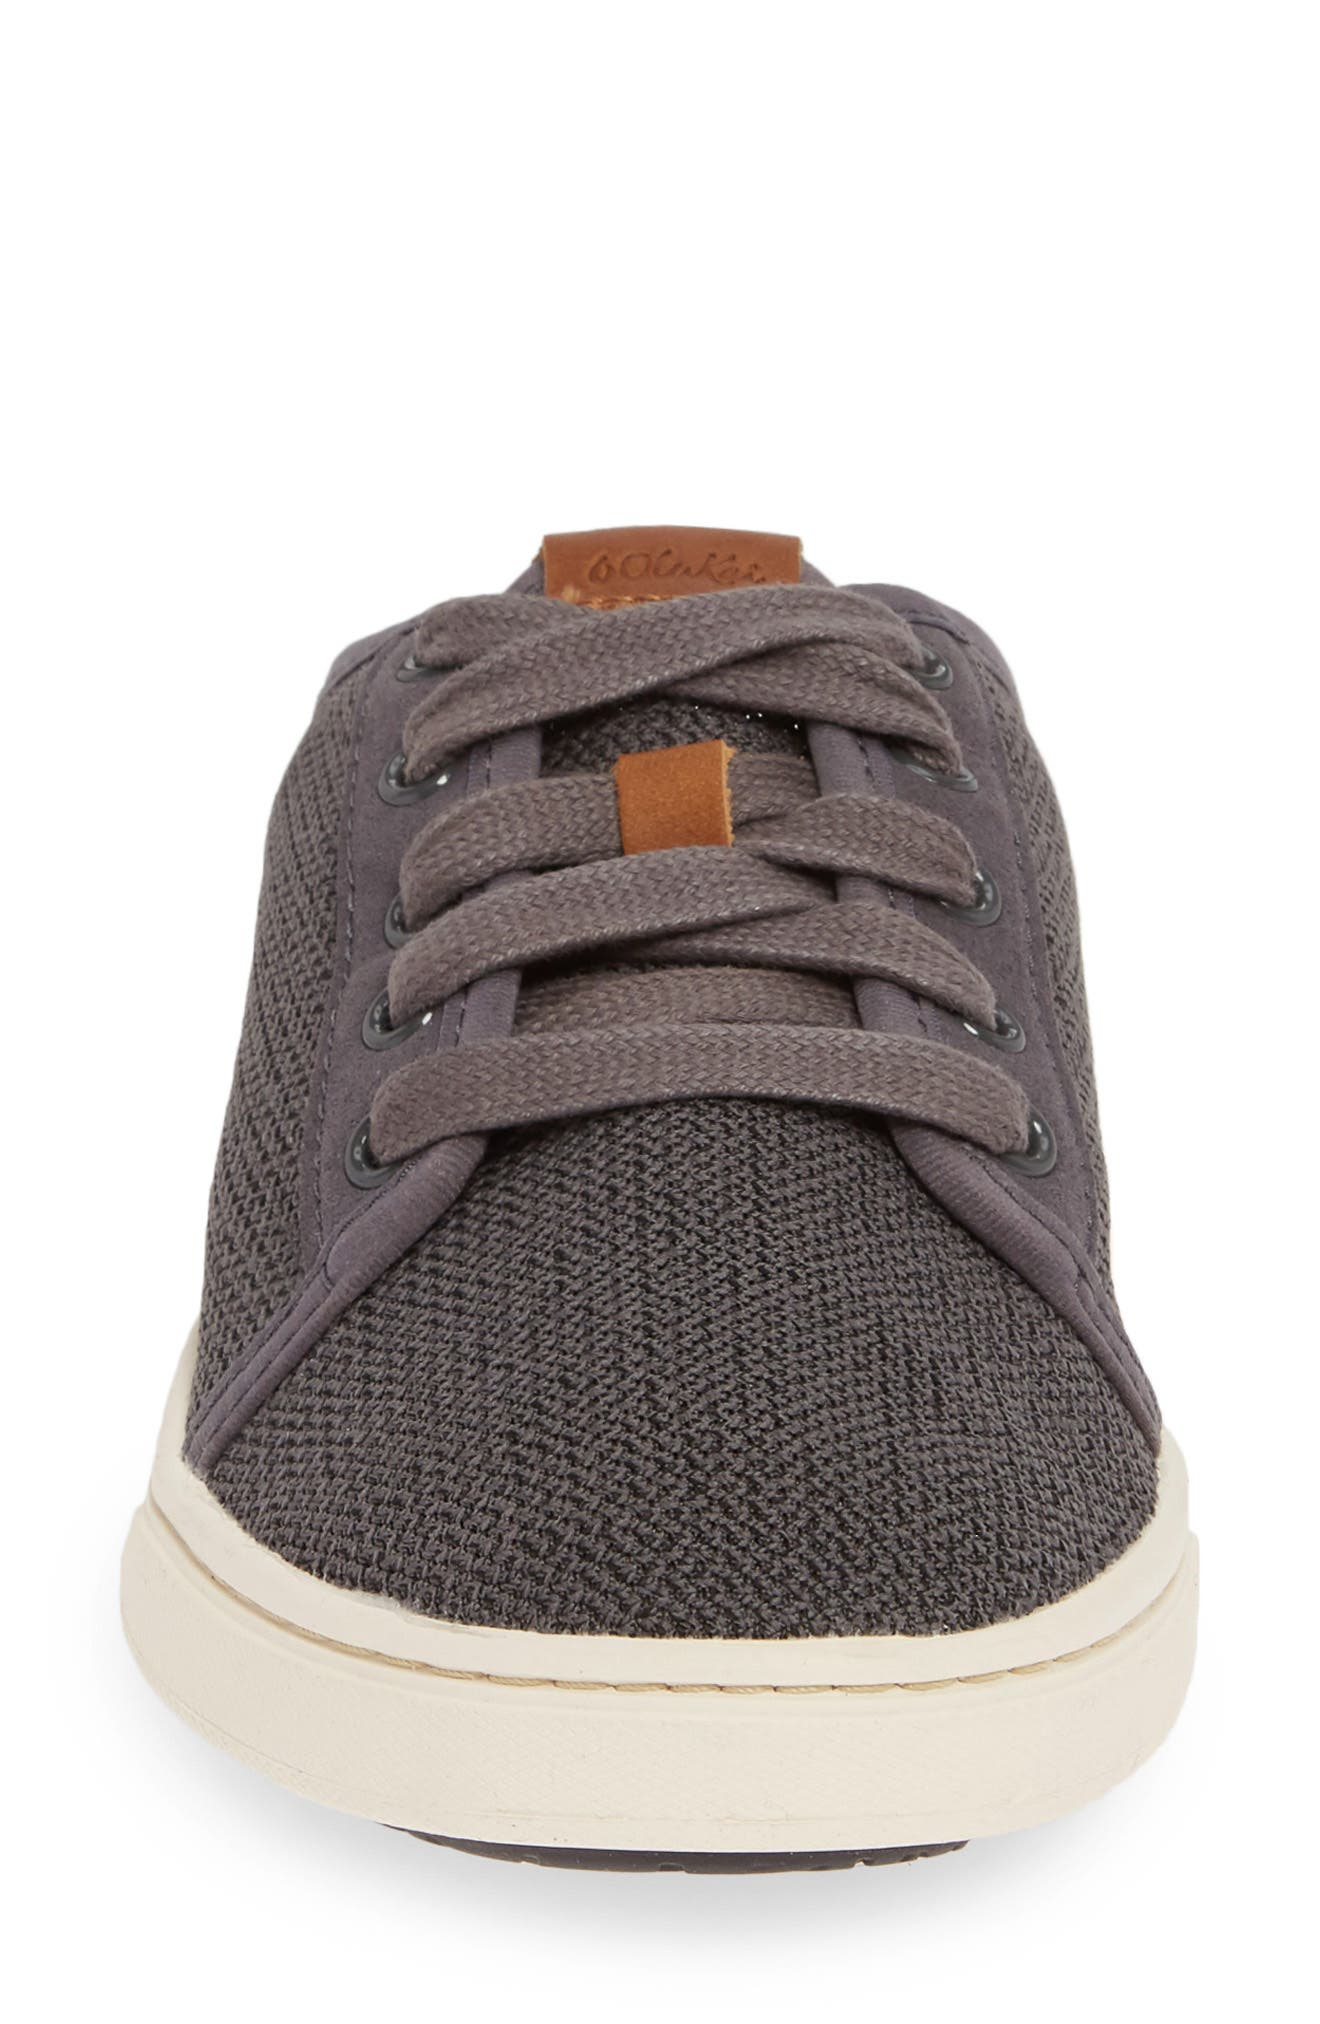 OLUKAI,                             Pehuea Li Convertible Sneaker,                             Alternate thumbnail 5, color,                             PAVEMENT/ PAVEMENT FABRIC